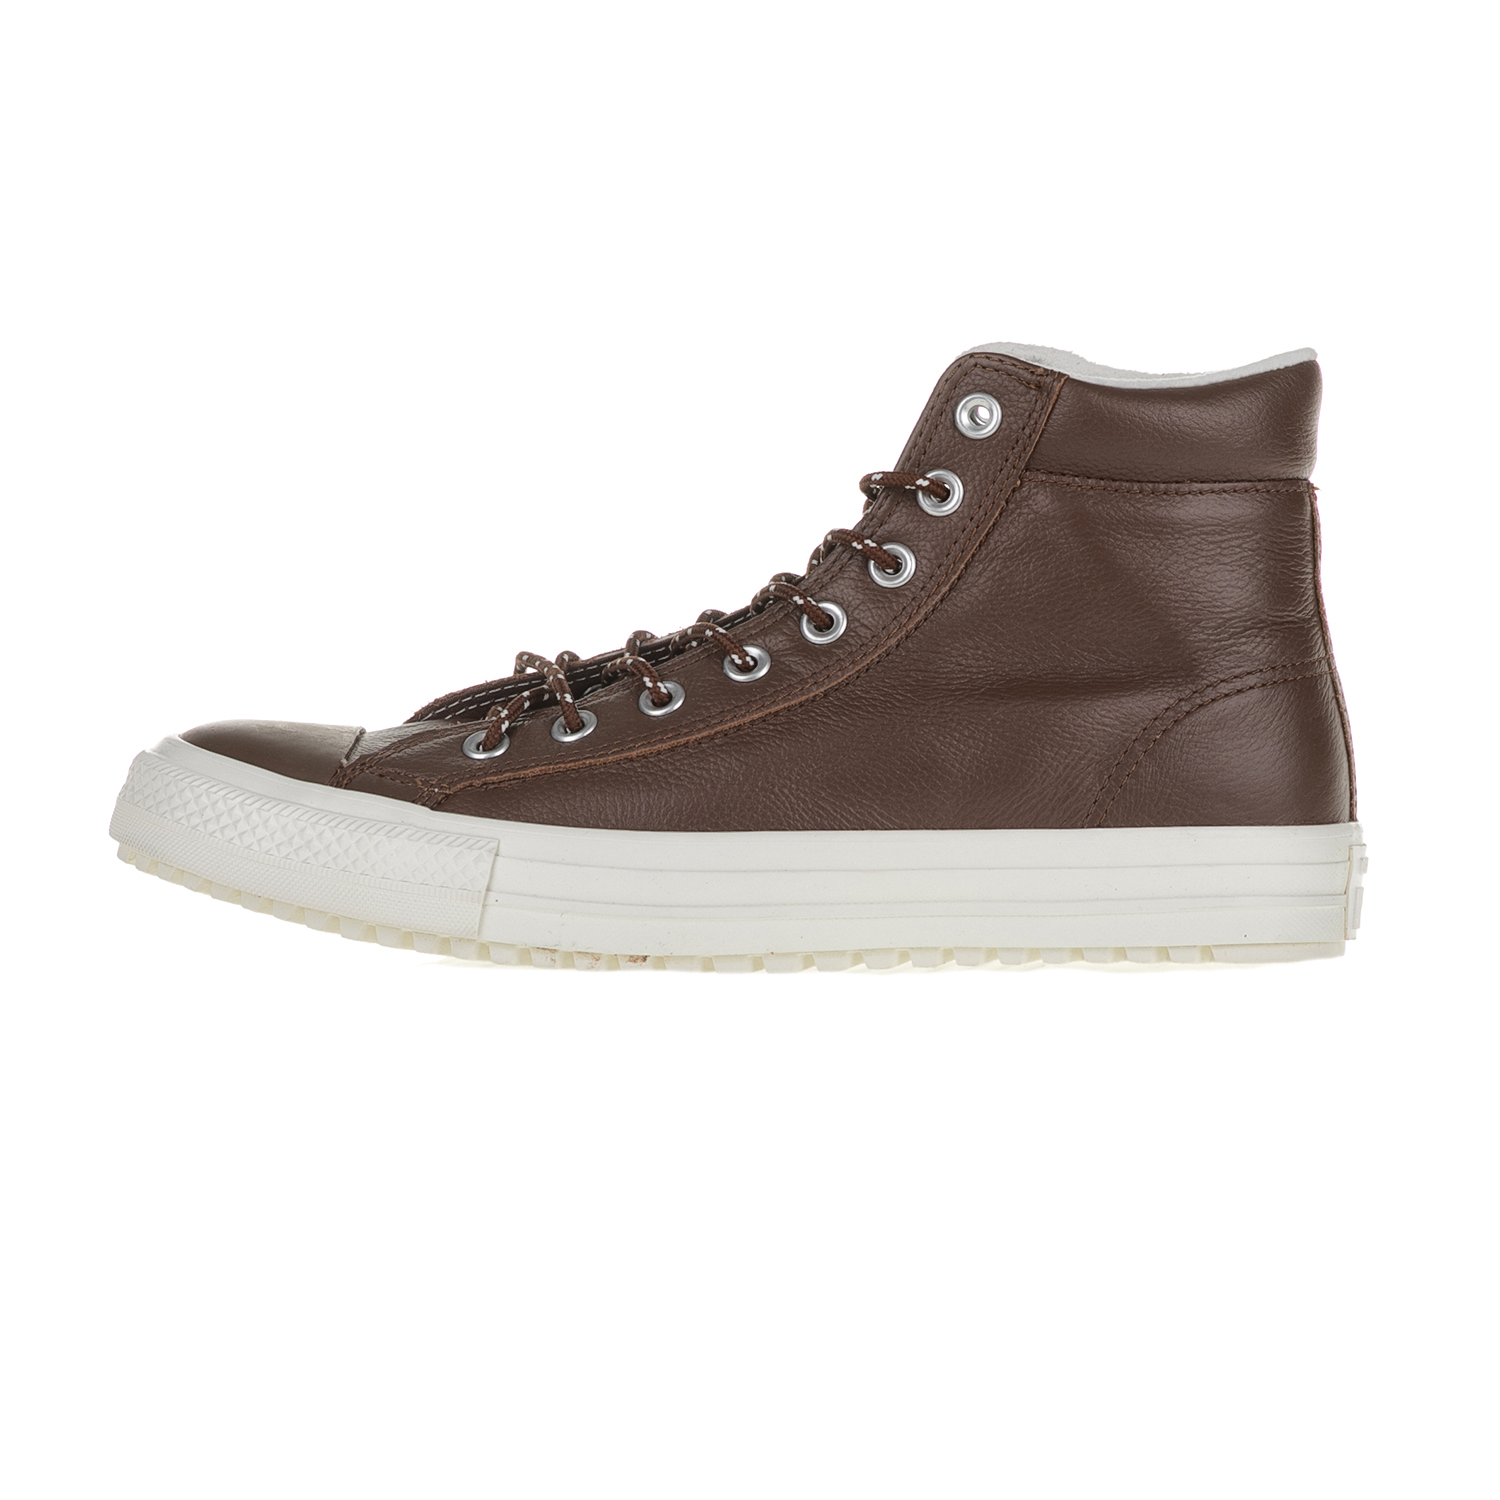 CONVERSE – Ανδρικά μποτάκια Converse Chuck Taylor All Star Boot PC καφέ